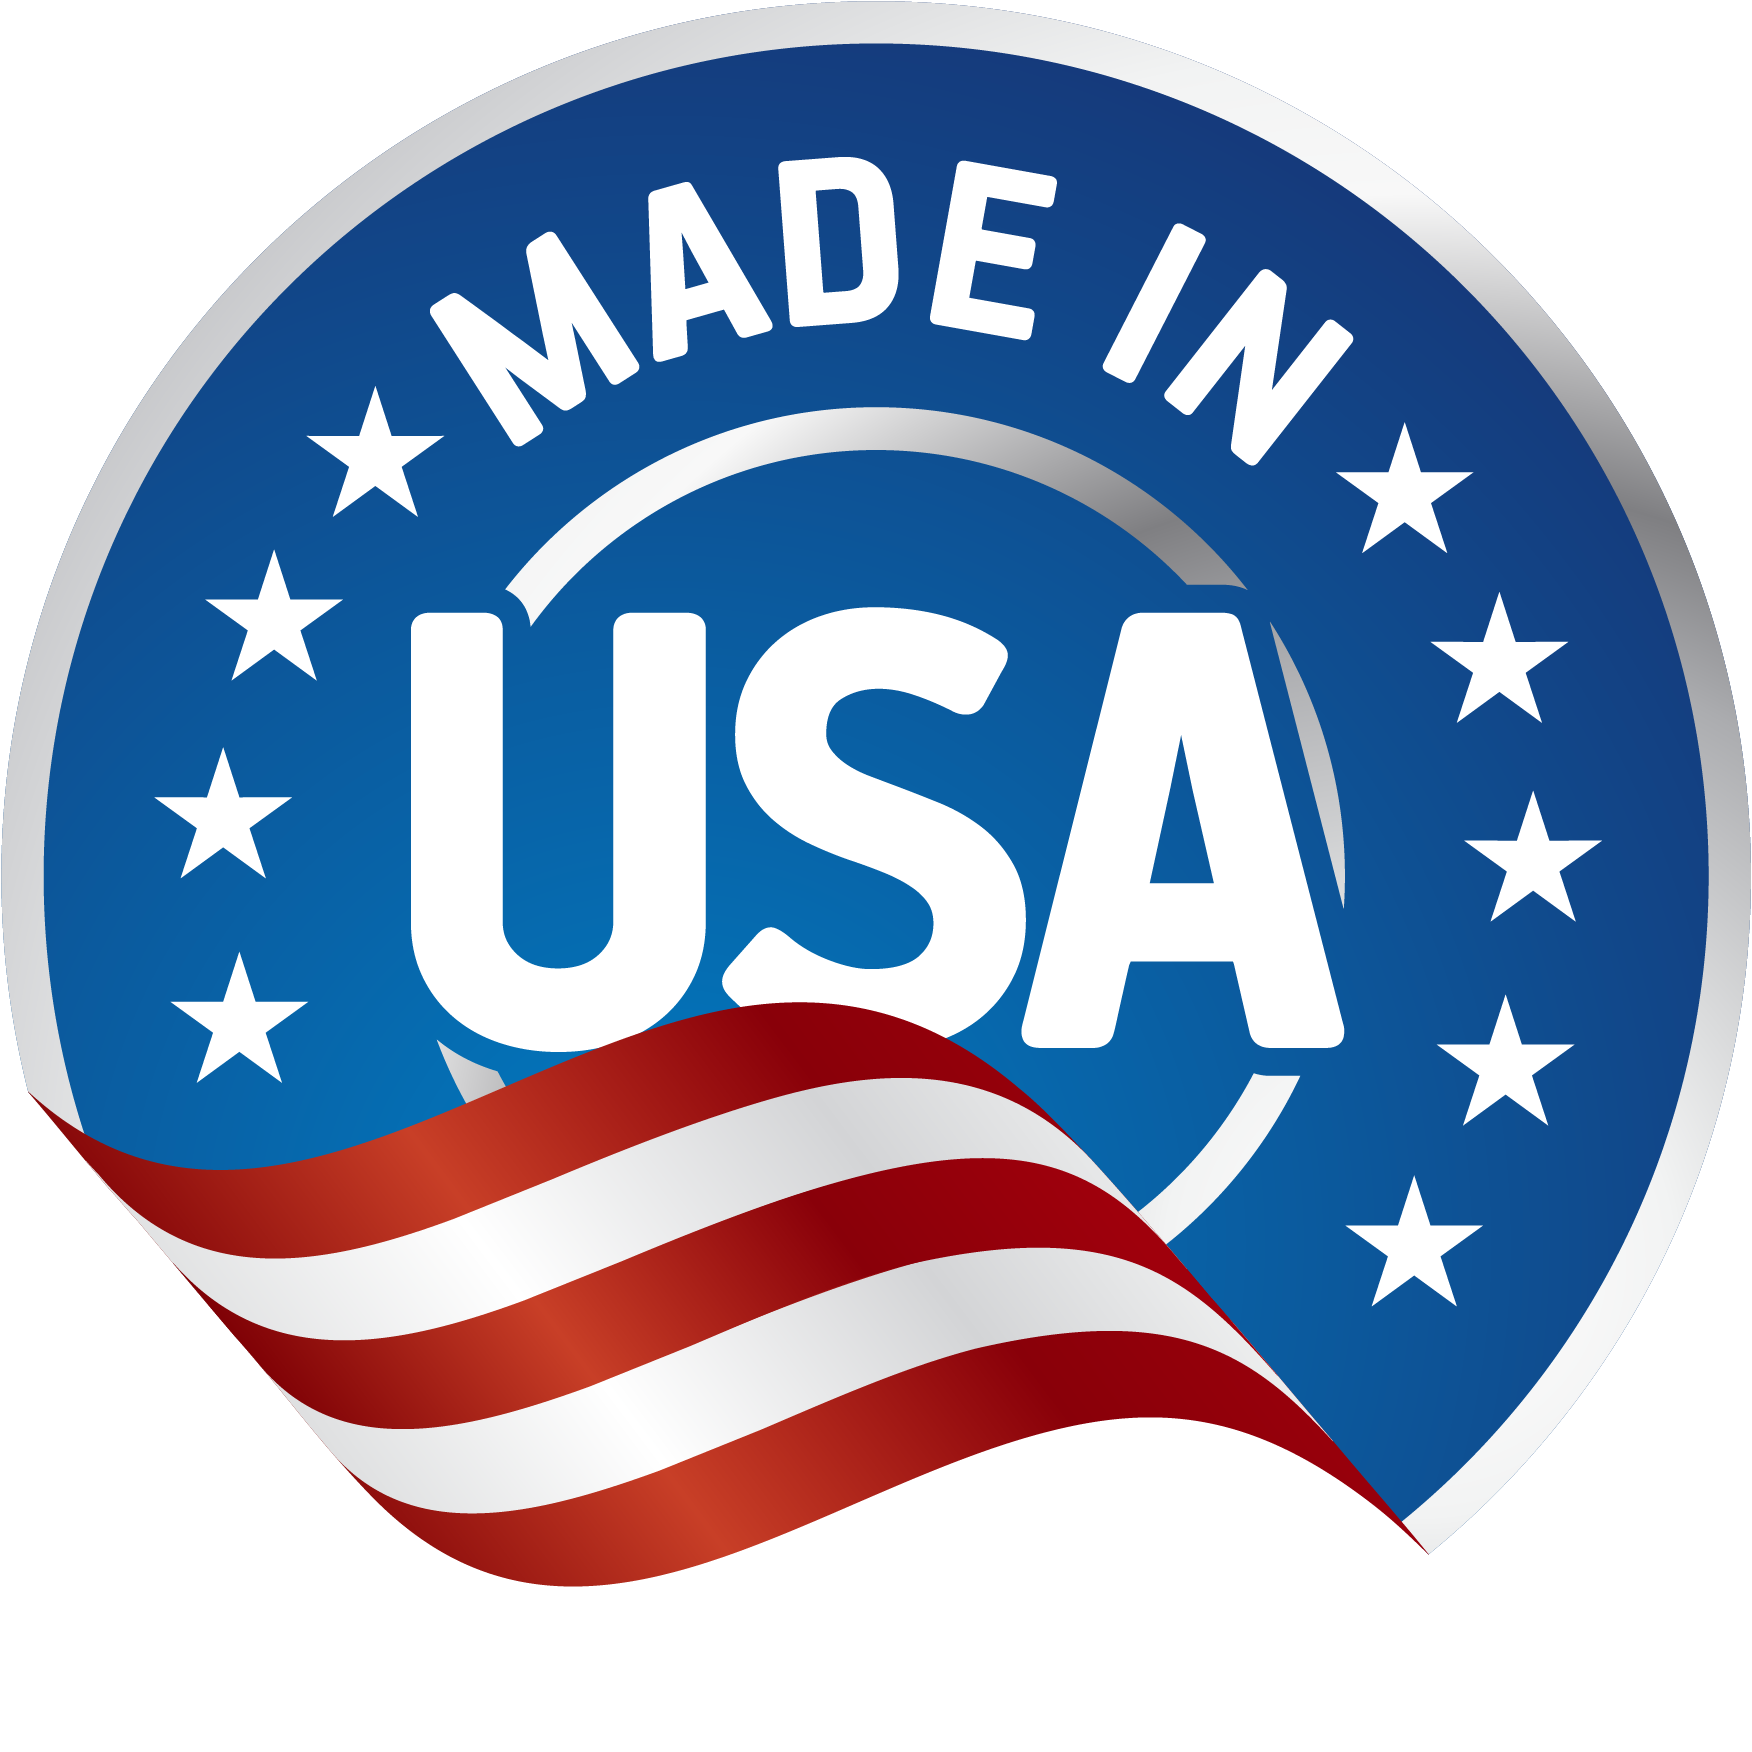 Product Made in the USA